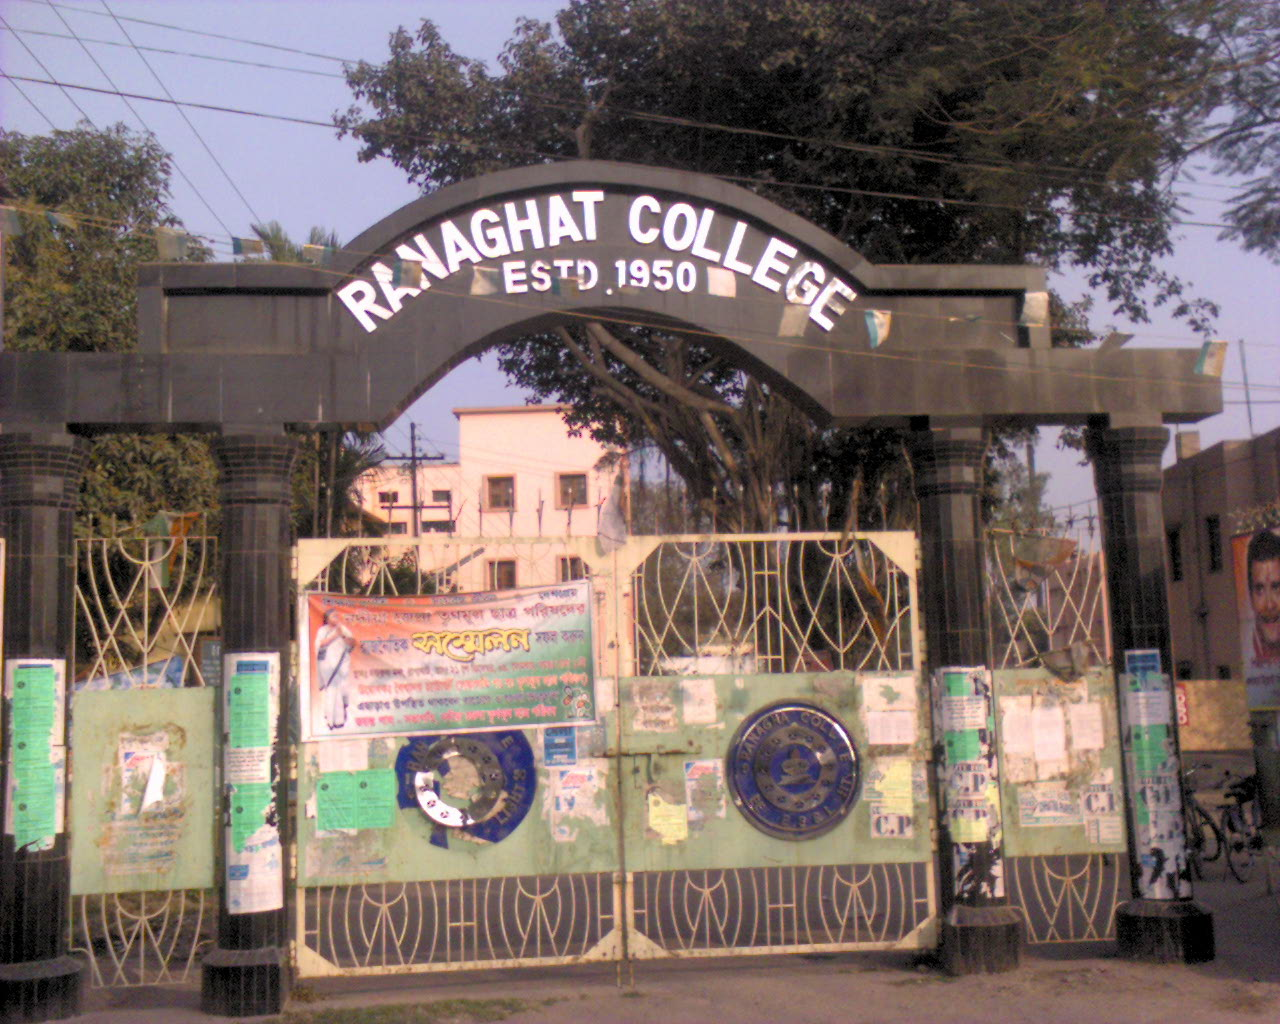 Ranaghat College - Wikipedia